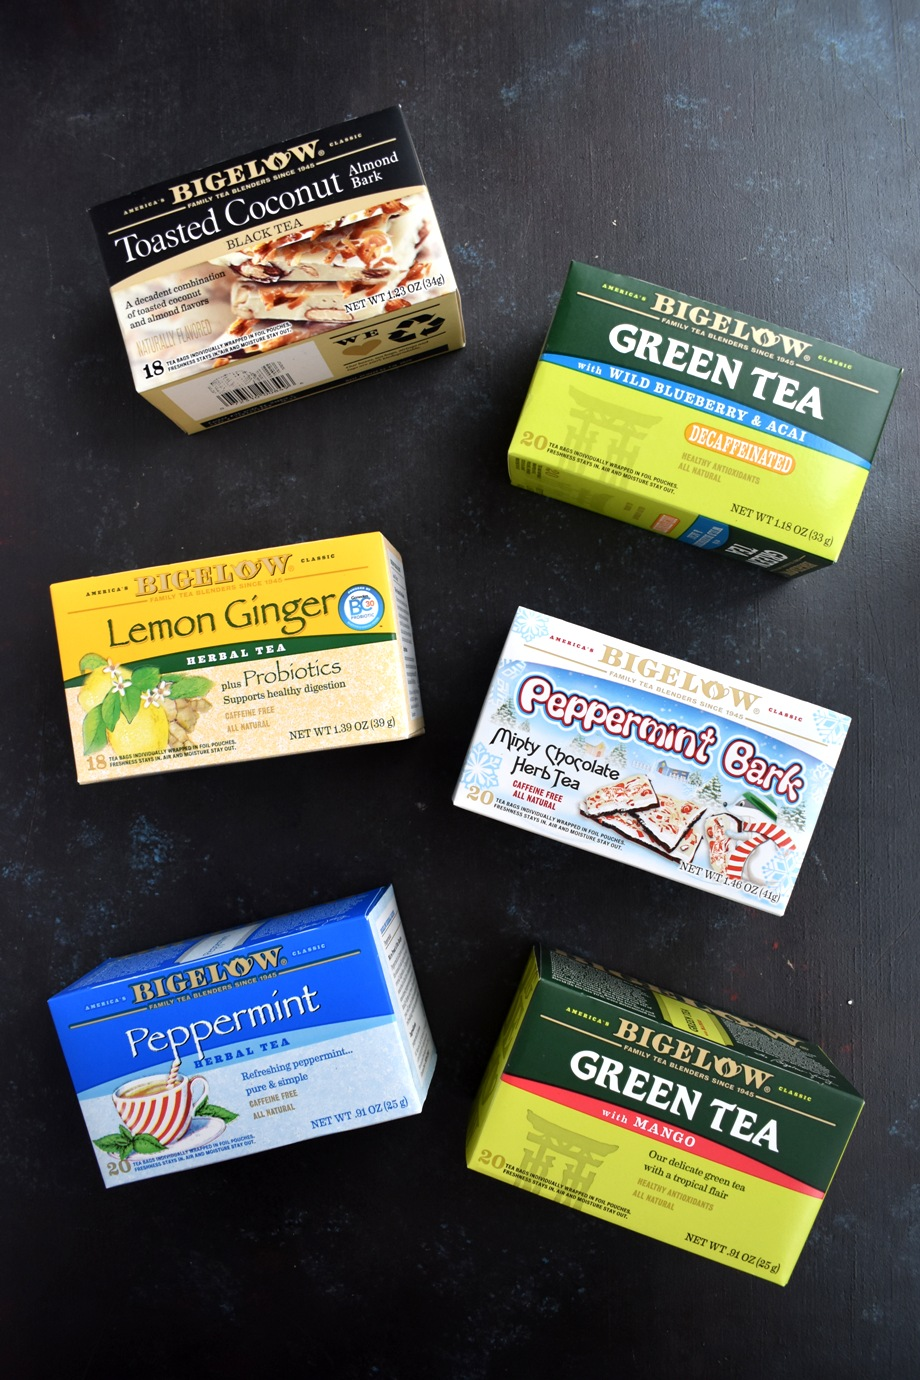 A variety of Bigelow Teas